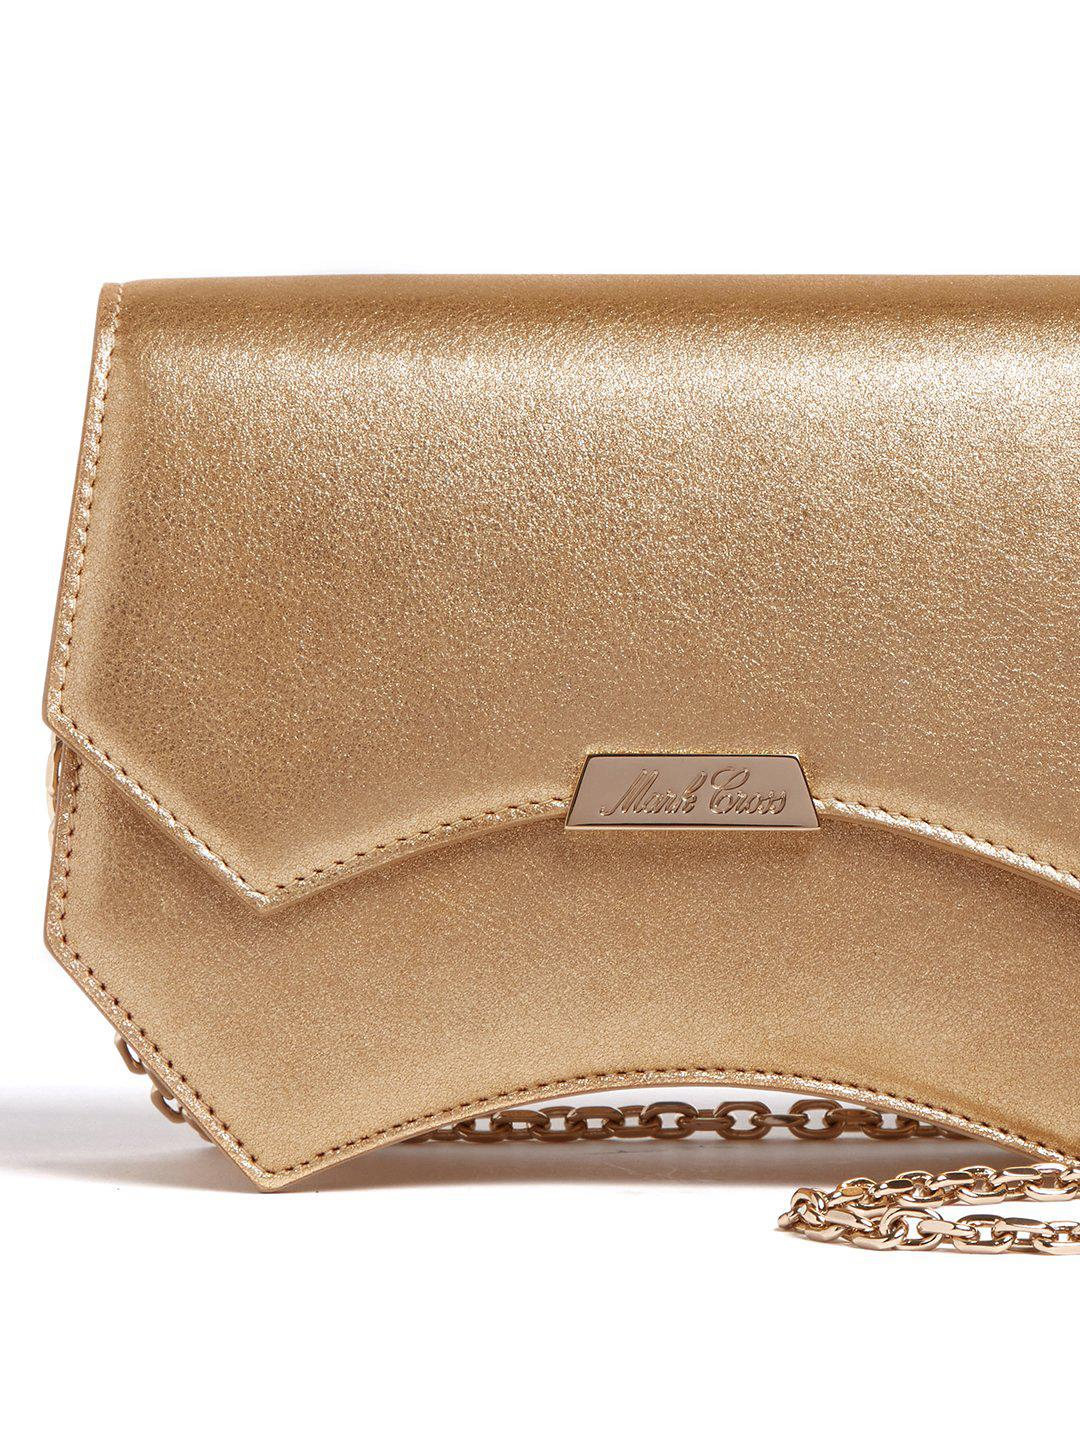 Madeline Evening Leather Clutch 2